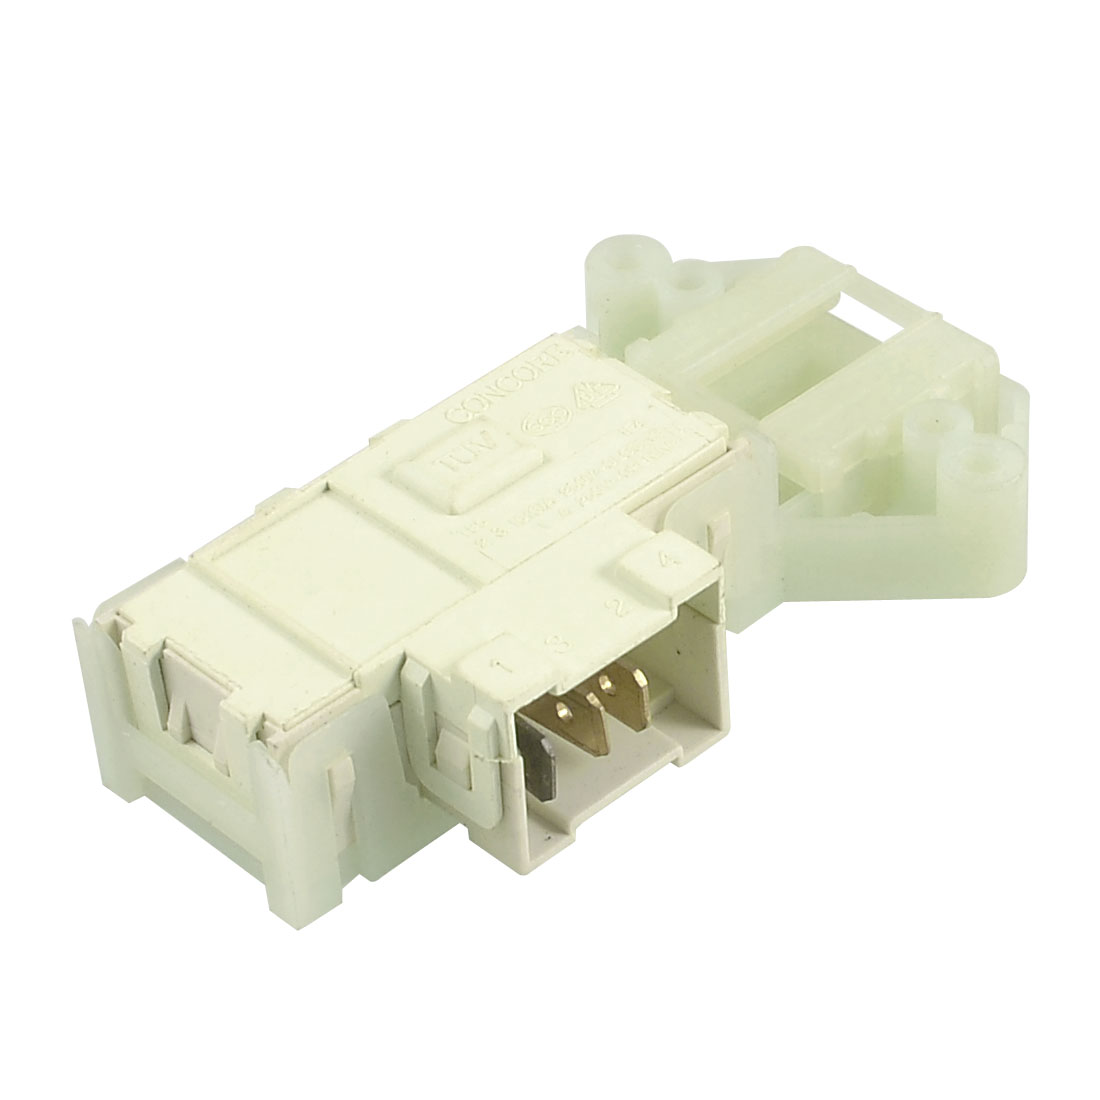 AC 250V 16A Plastic Door Lock Interlock for Washing Machine